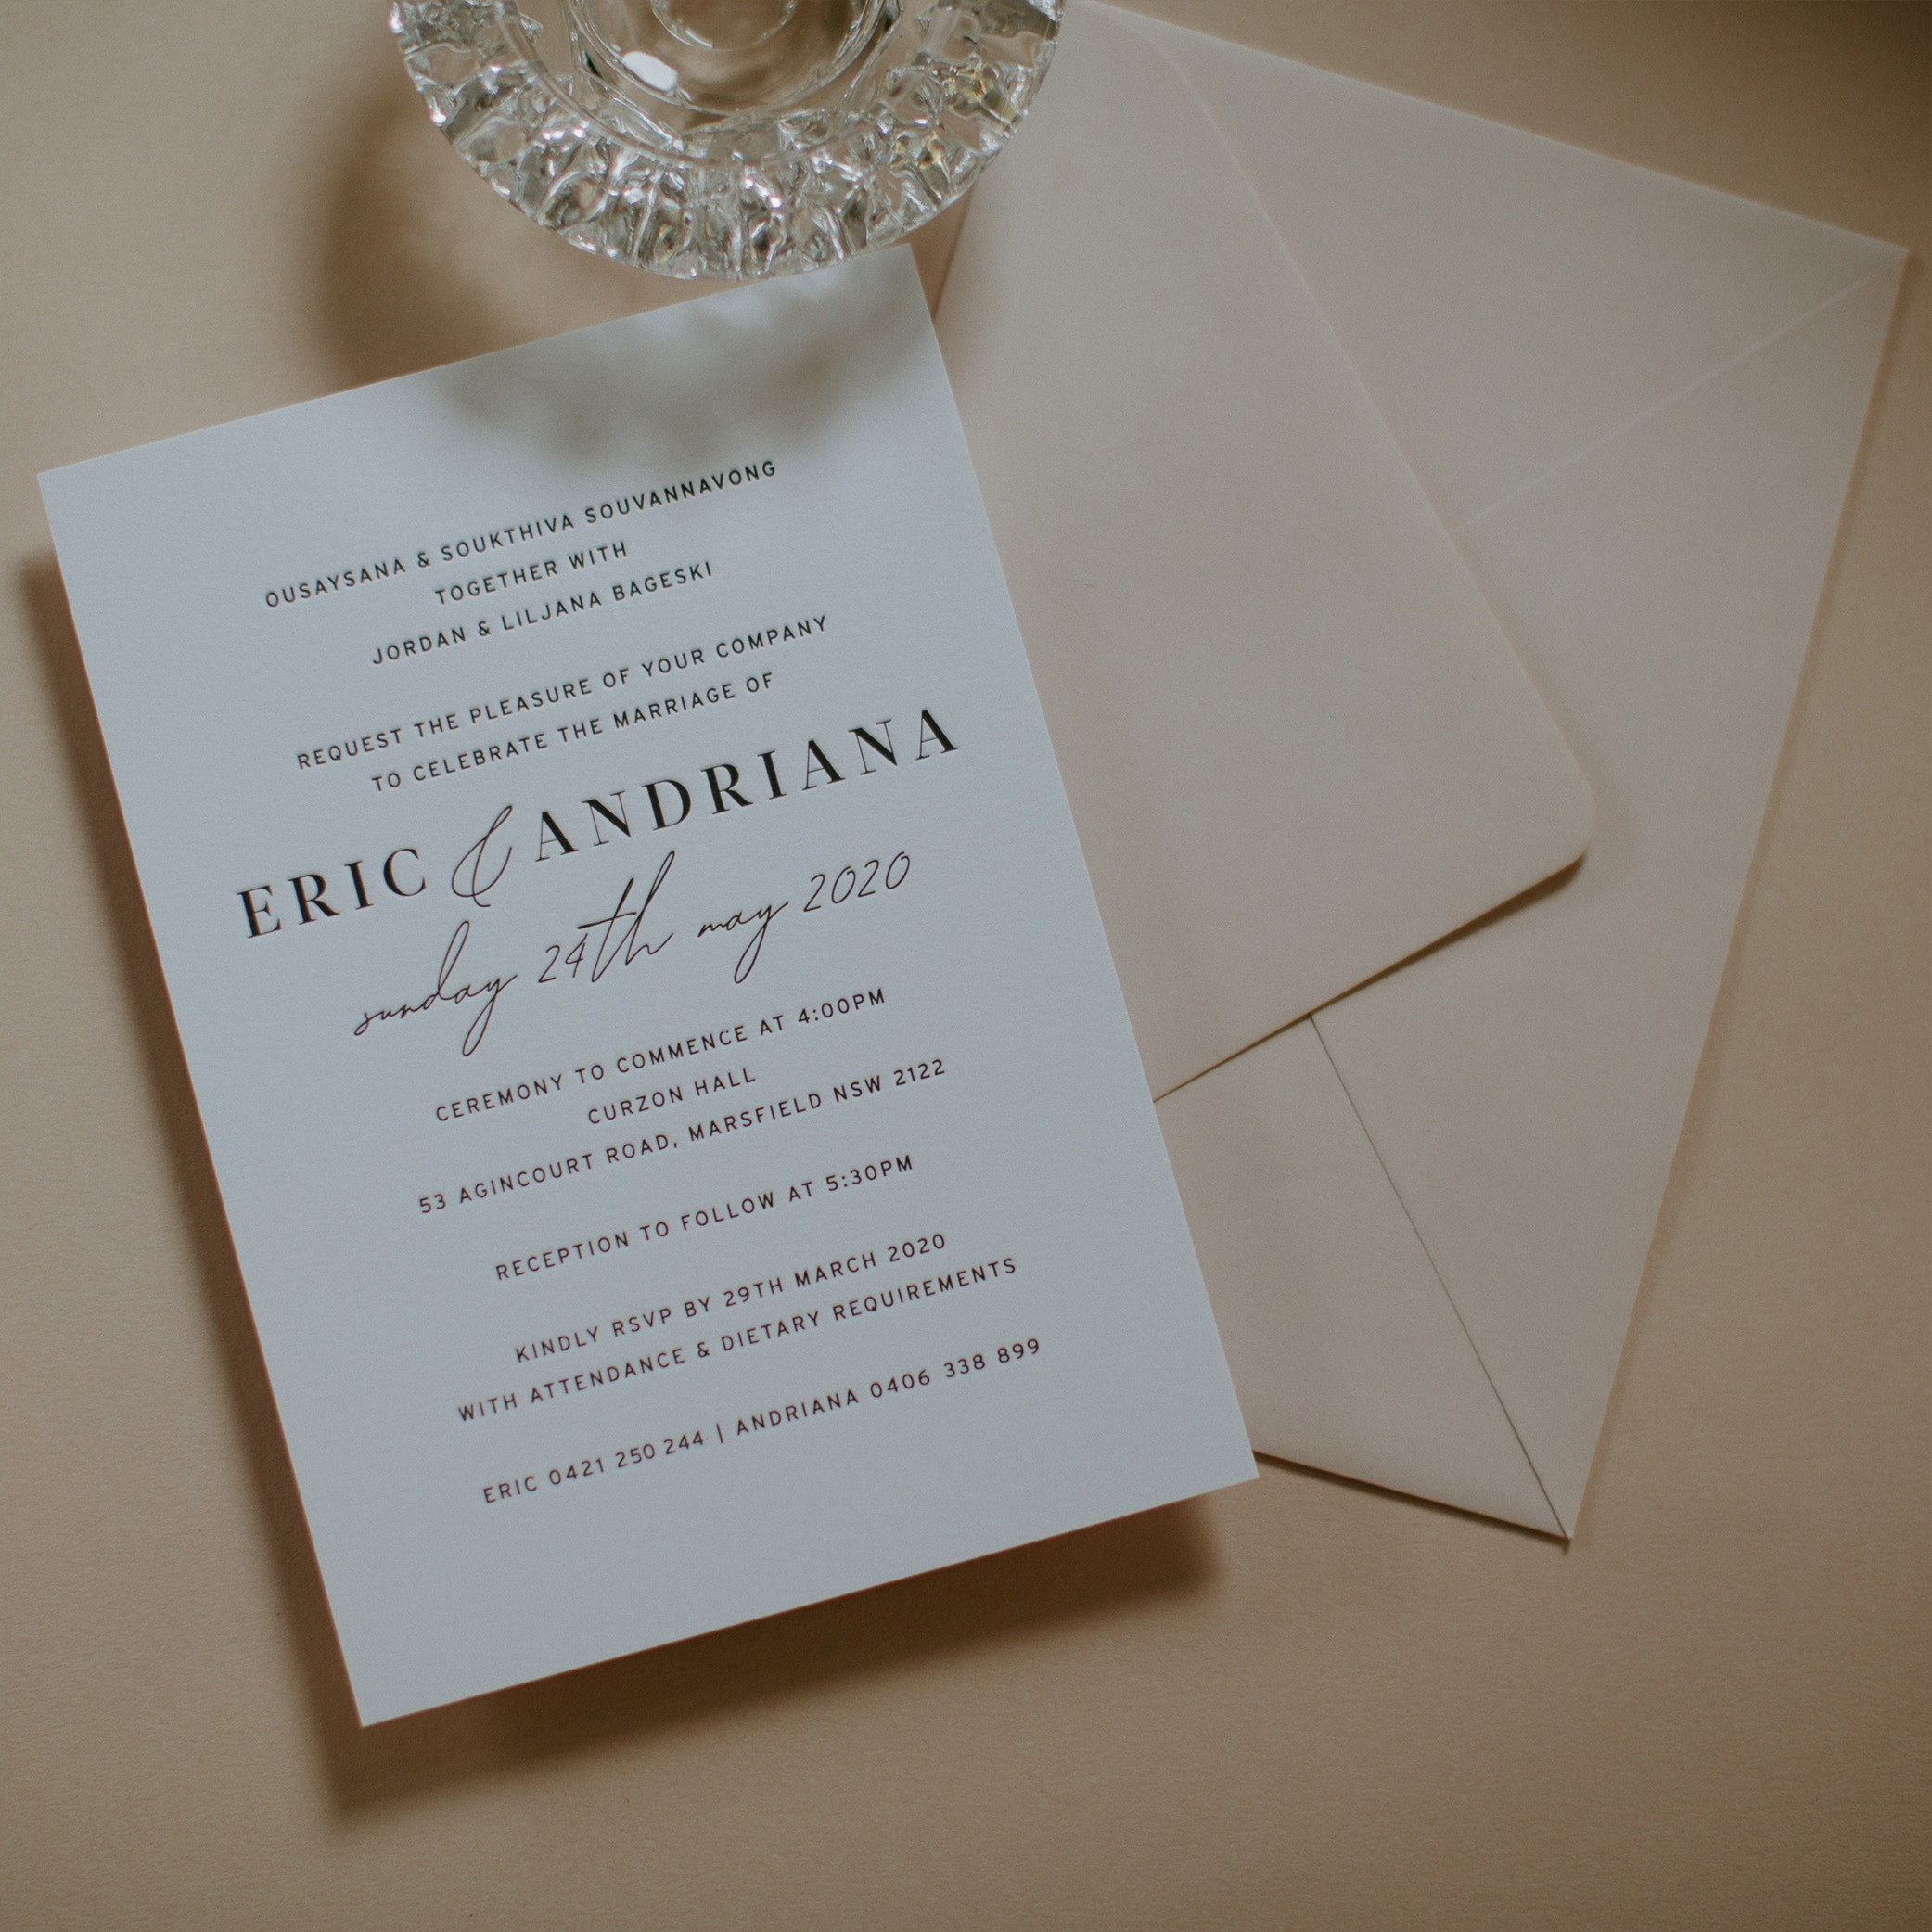 - MAIN INVITATION | Andriana + Eric